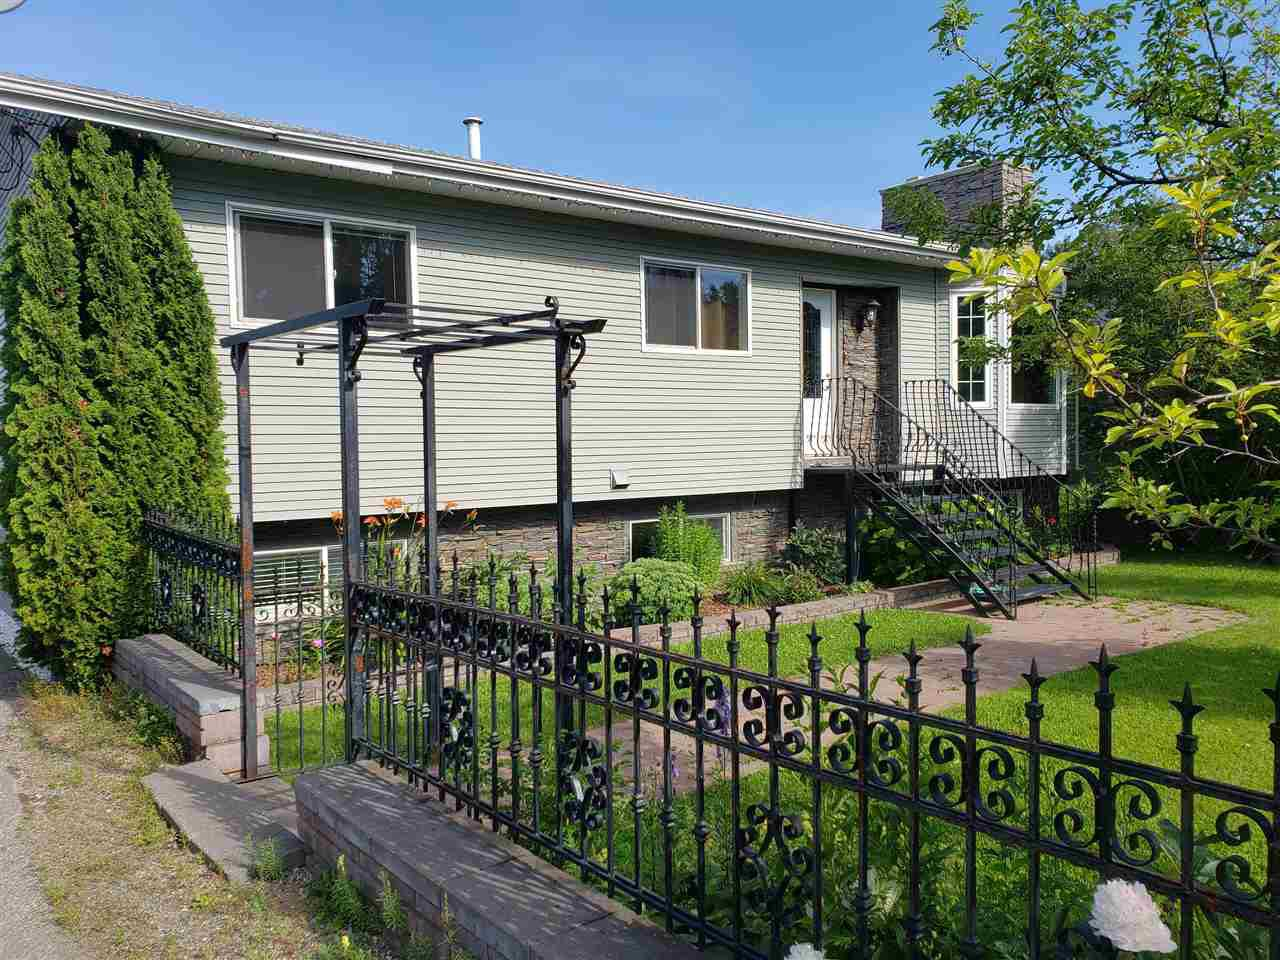 Main Photo: 7875 THOMPSON Drive in Prince George: Parkridge Manufactured Home for sale (PG City South (Zone 74))  : MLS®# R2481934